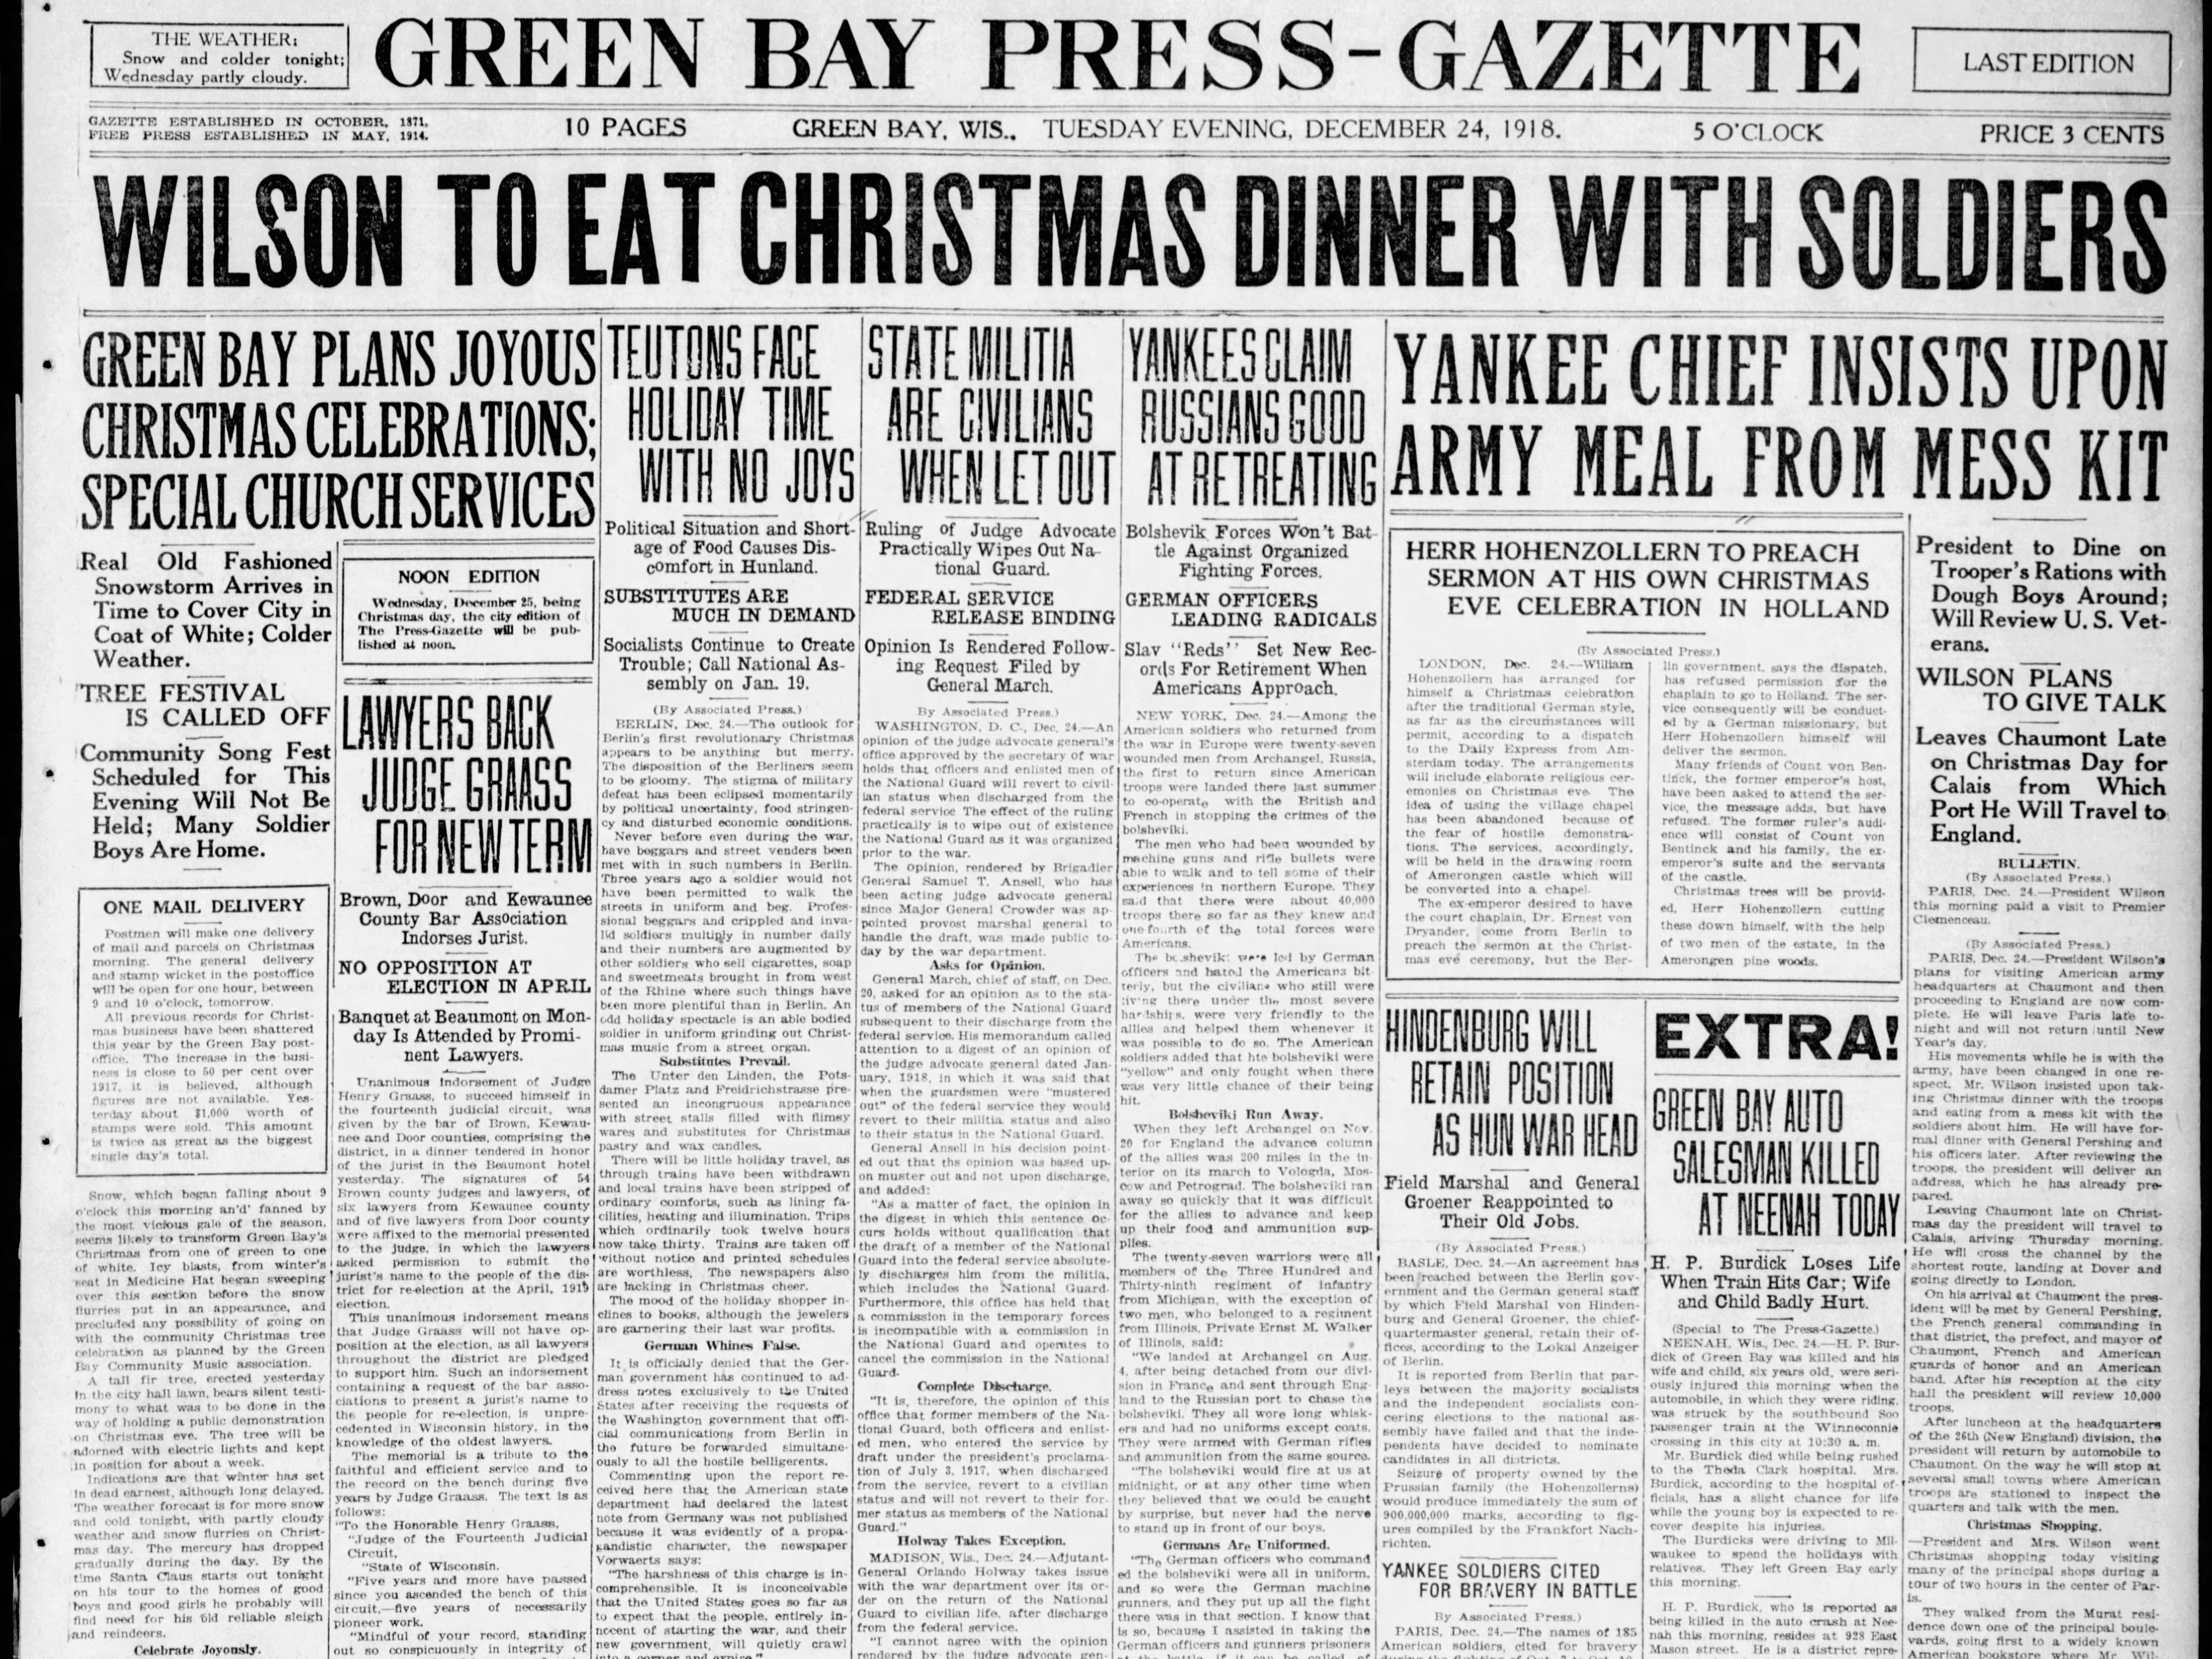 Today in History: Dec. 24, 1918